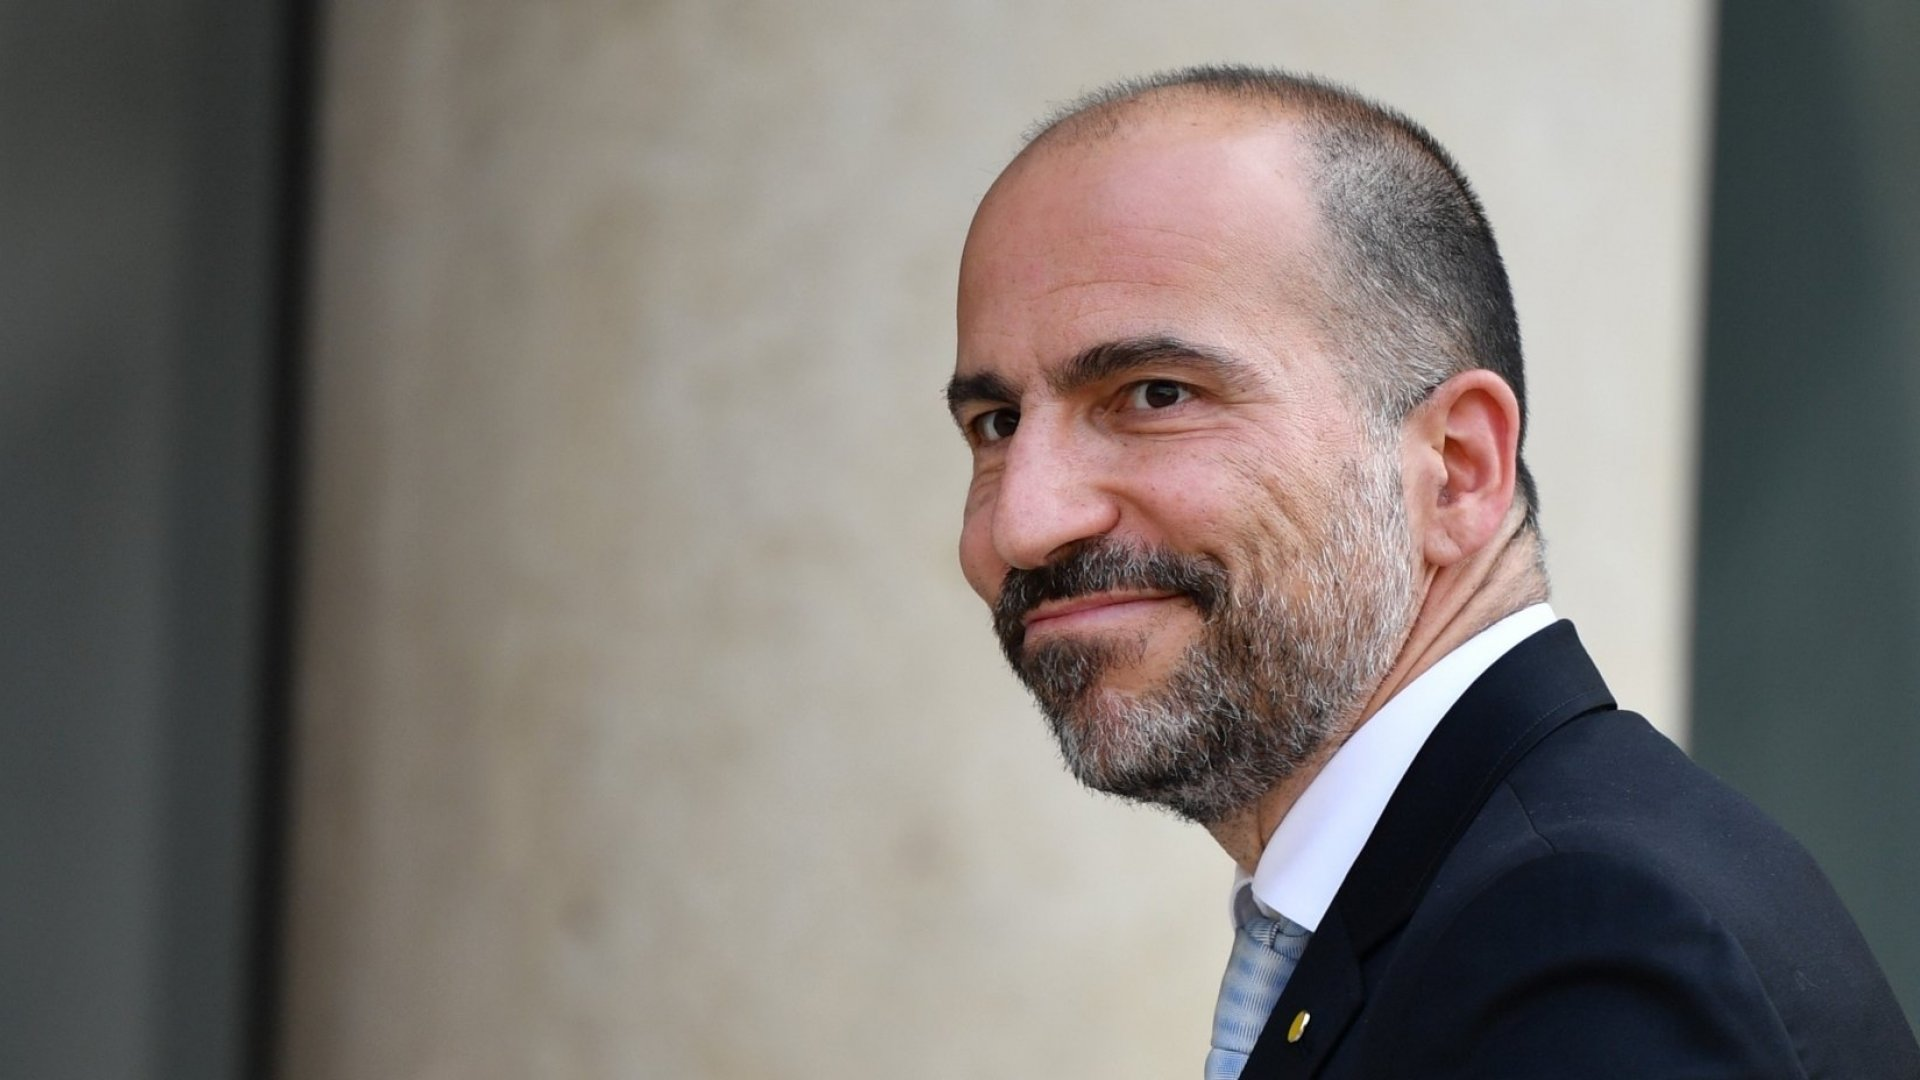 Uber's CEO Just Taught a Powerful Lesson in Emotional Intelligence. Here It Is in 5 Words